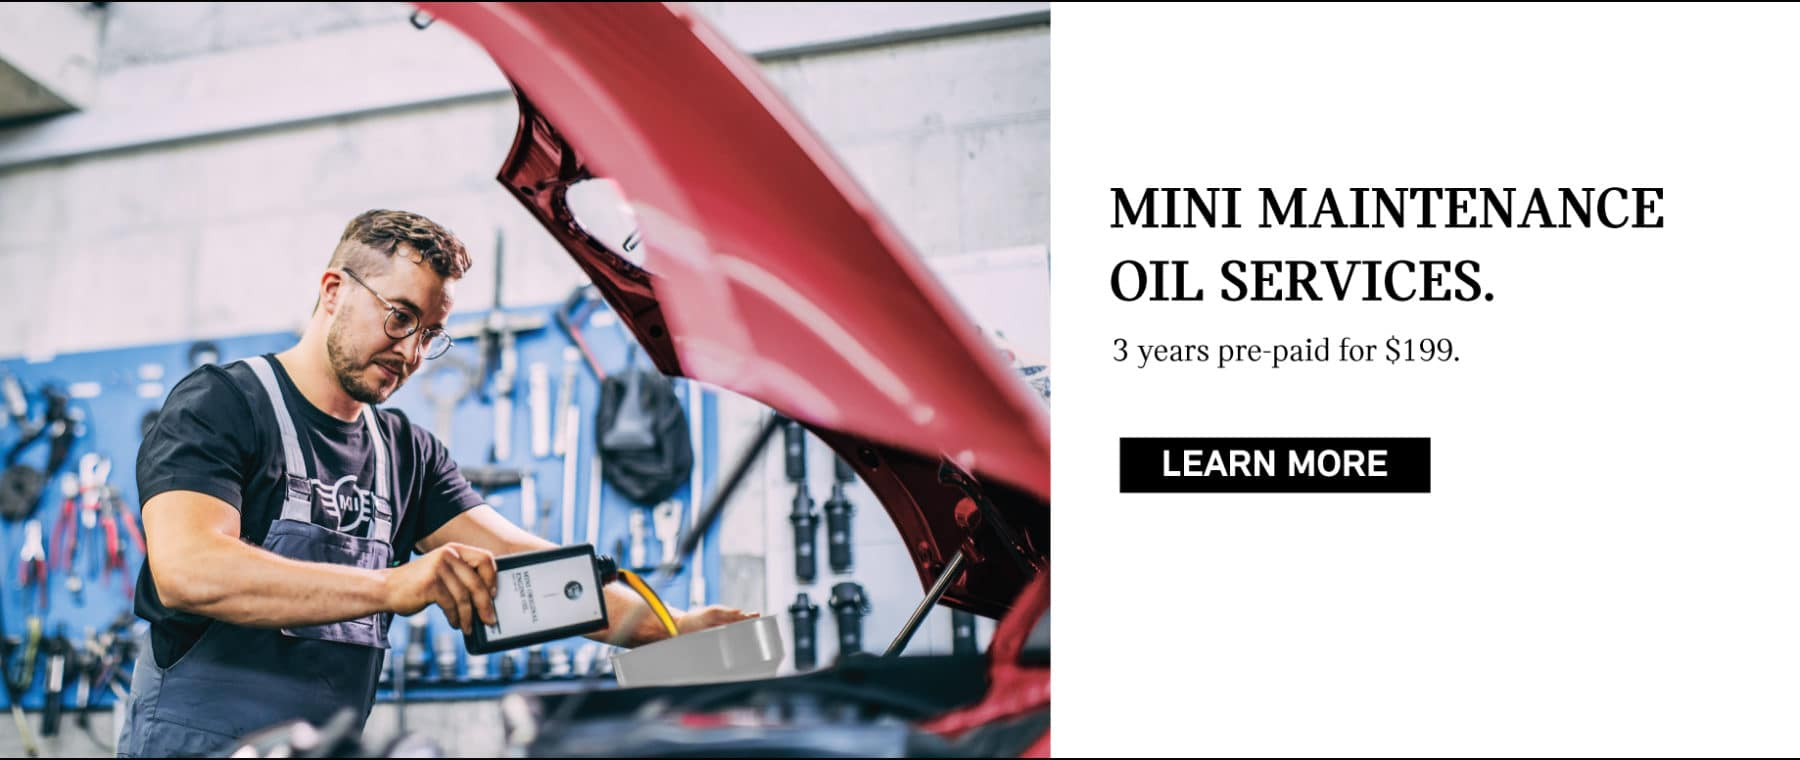 MINI Maintenance Oil Services. 3 years pre paid for $199